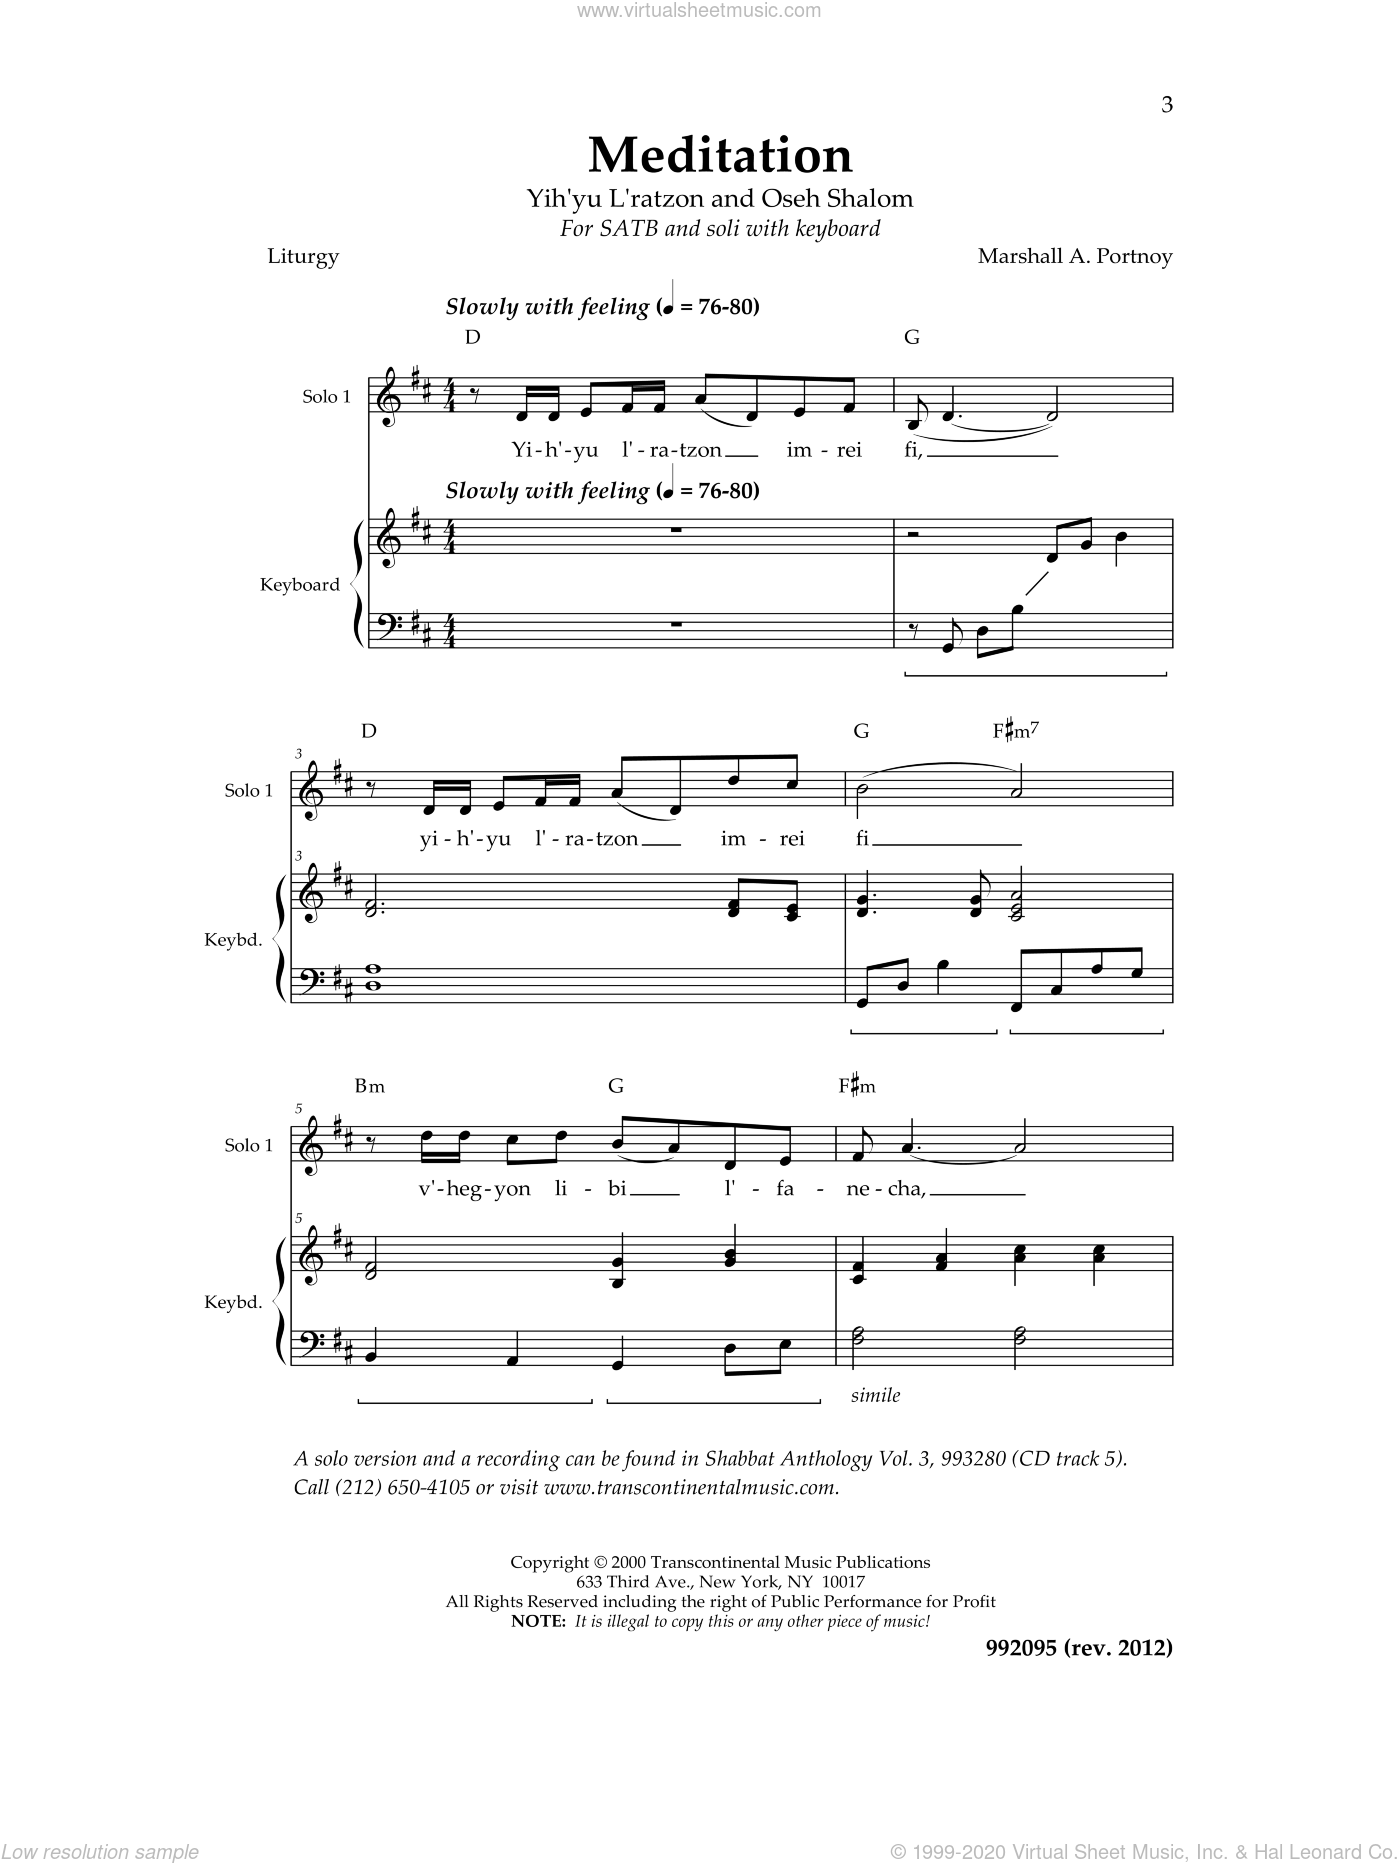 Meditation sheet music for choir and piano by Marshall Portnoy